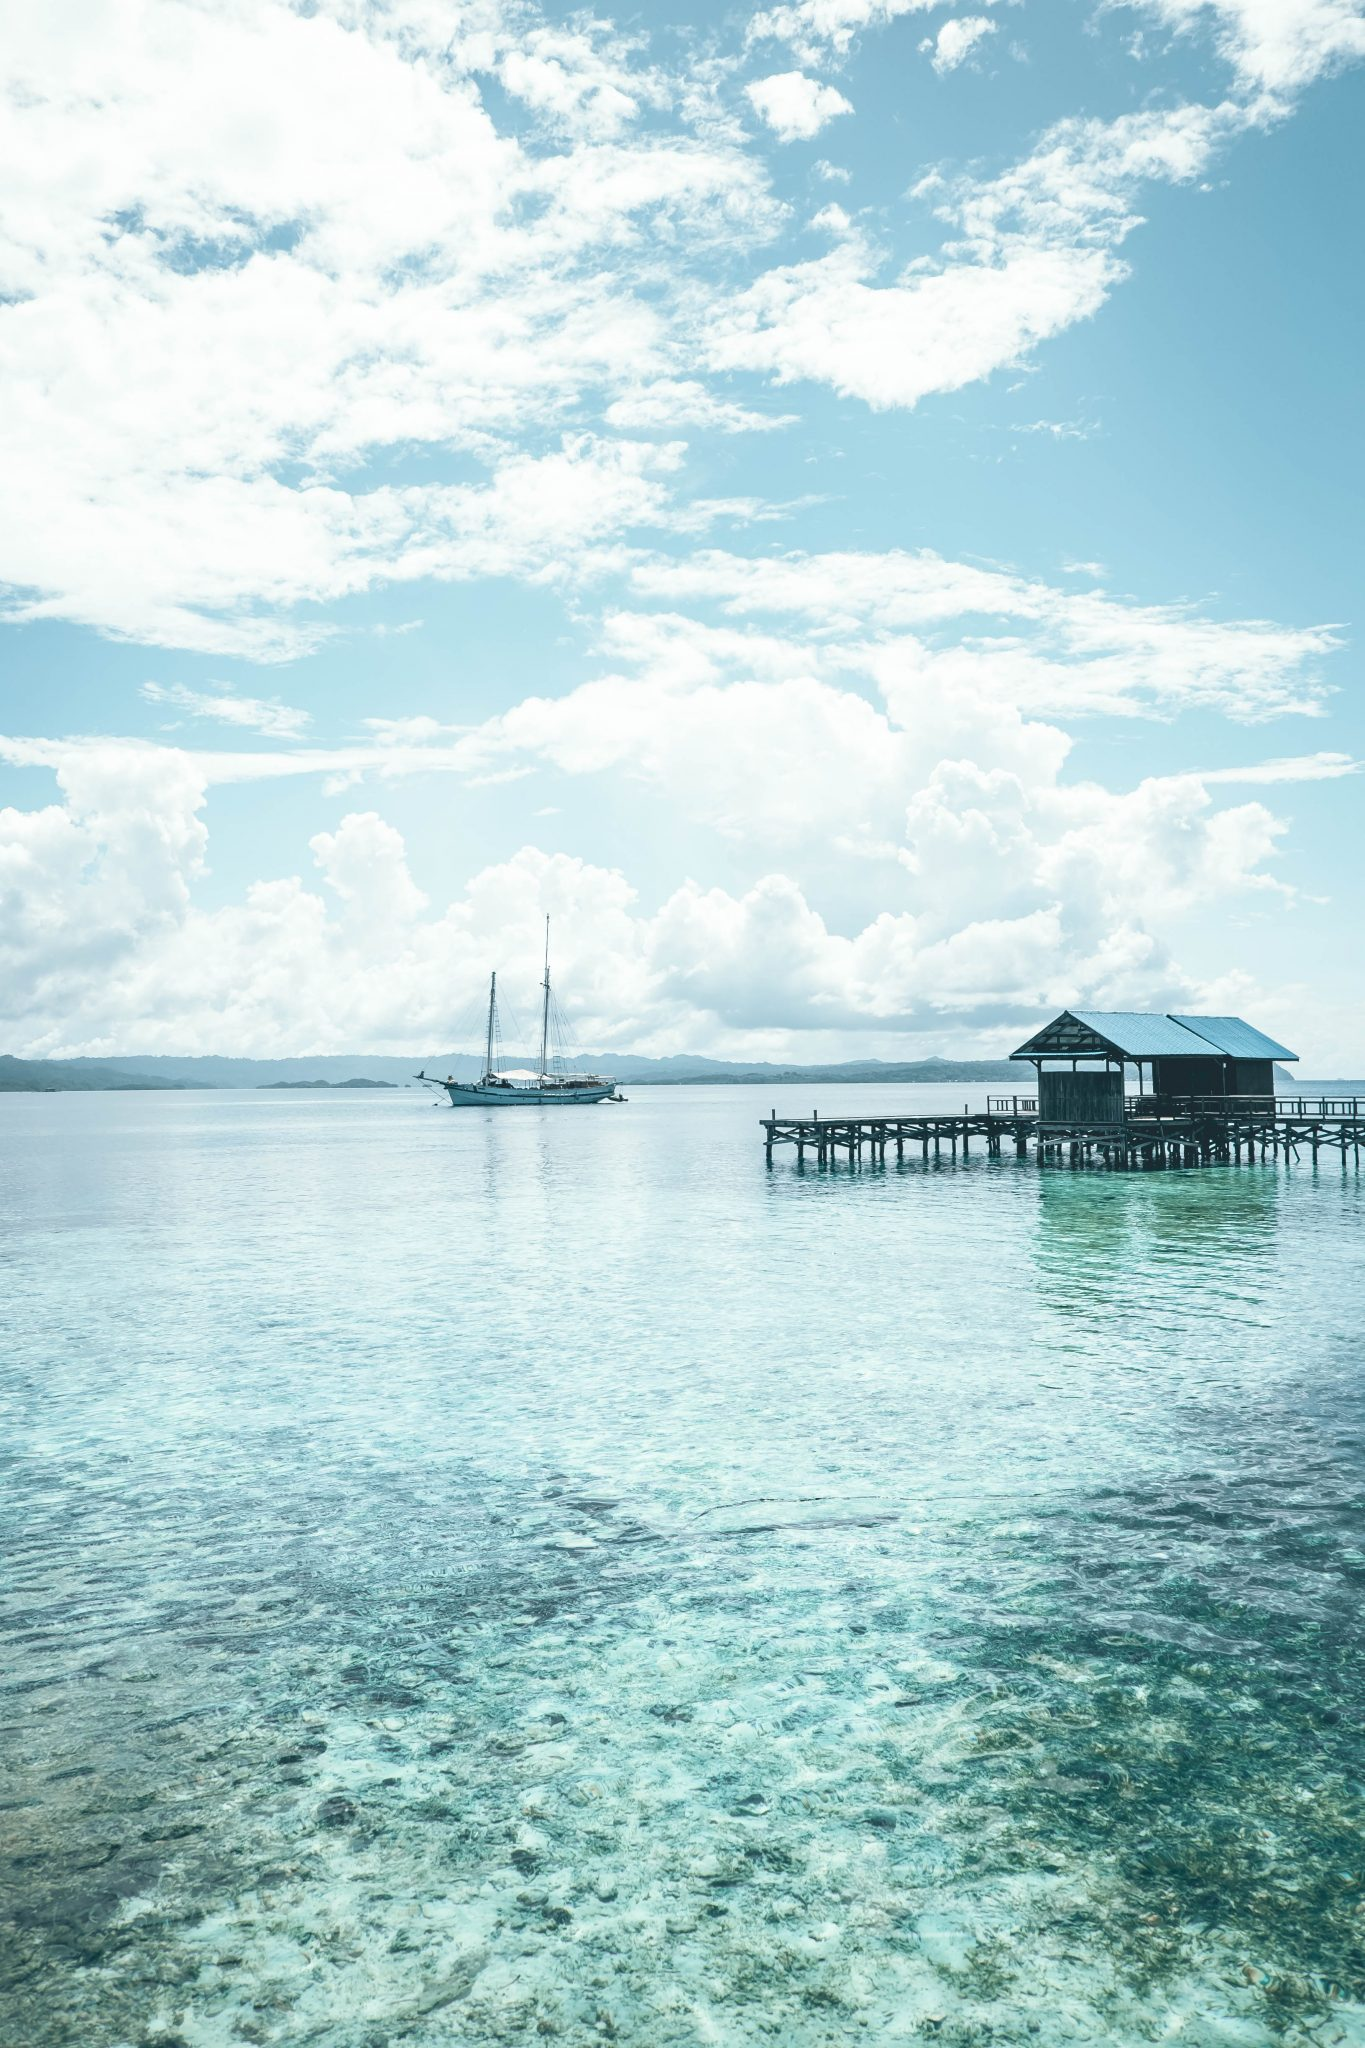 Keen to explore some of the best scuba diving in Indonesia? There is no better way than with a Raja Ampat liveaboard like the Emperor.